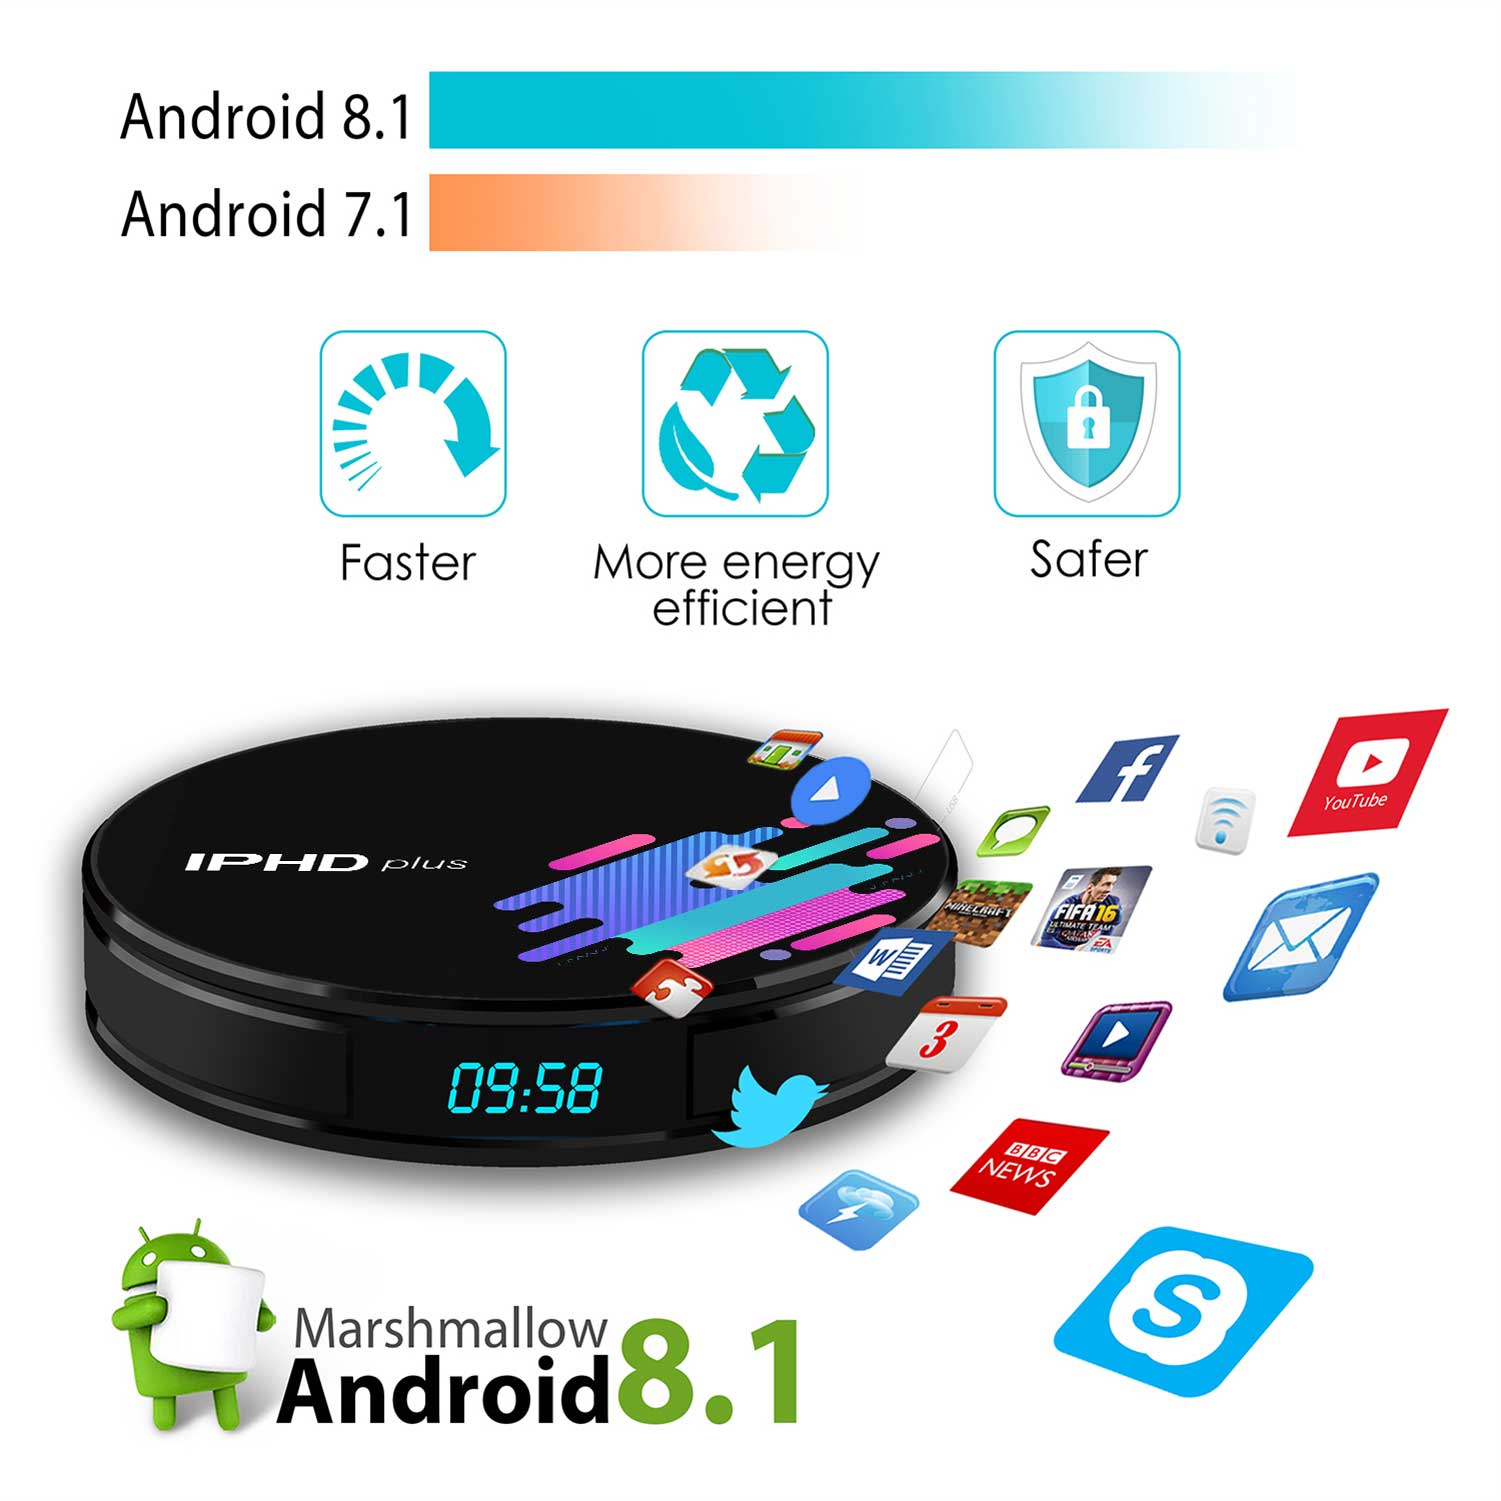 IPHD Plus S905X2 Android tv box IPHD plus Android 9.0 4+32GB 2.4/5G Dual WiFi Smart TV box